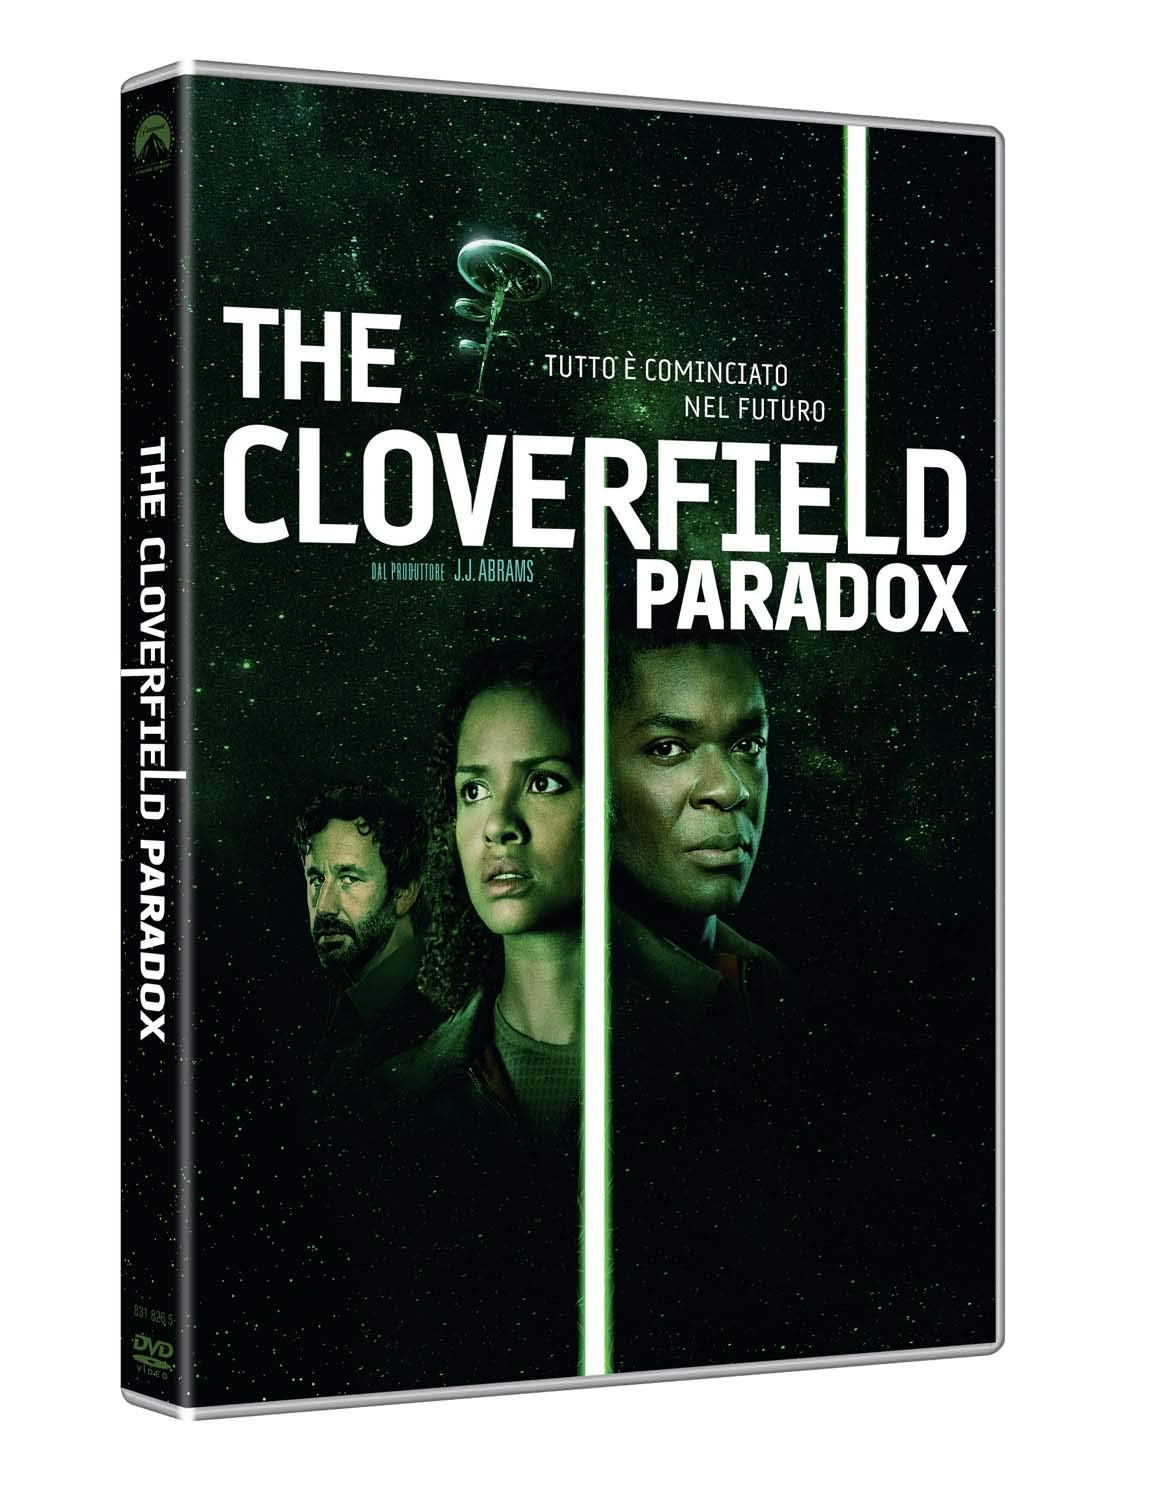 THE CLOVERFIELD PARADOX (DVD)